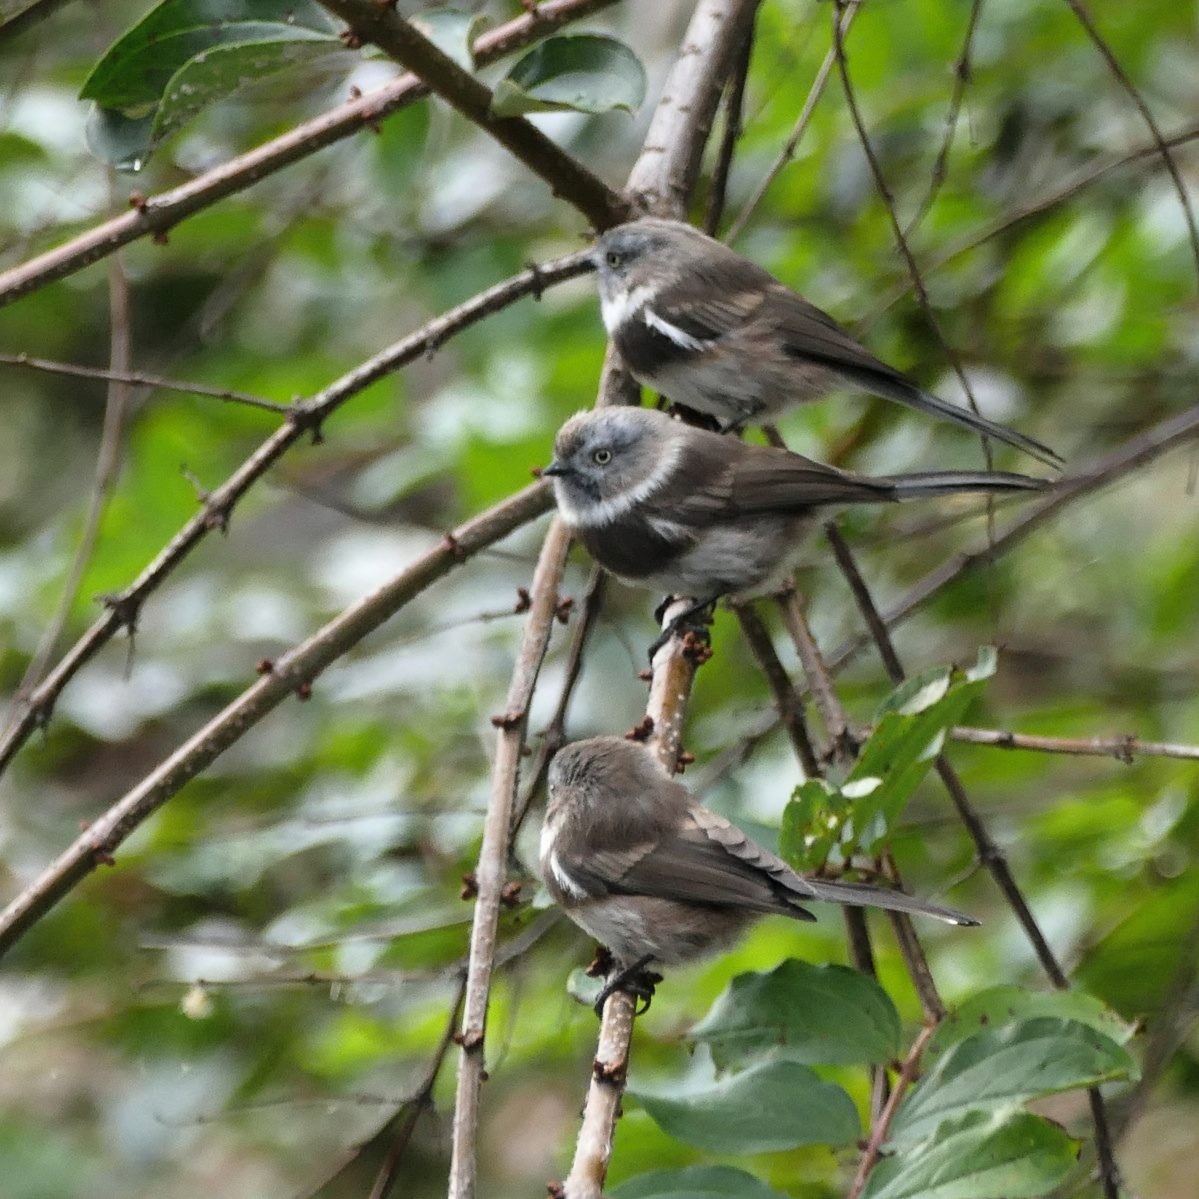 Three Sooty Tits line up on a branch. Noah Strycker